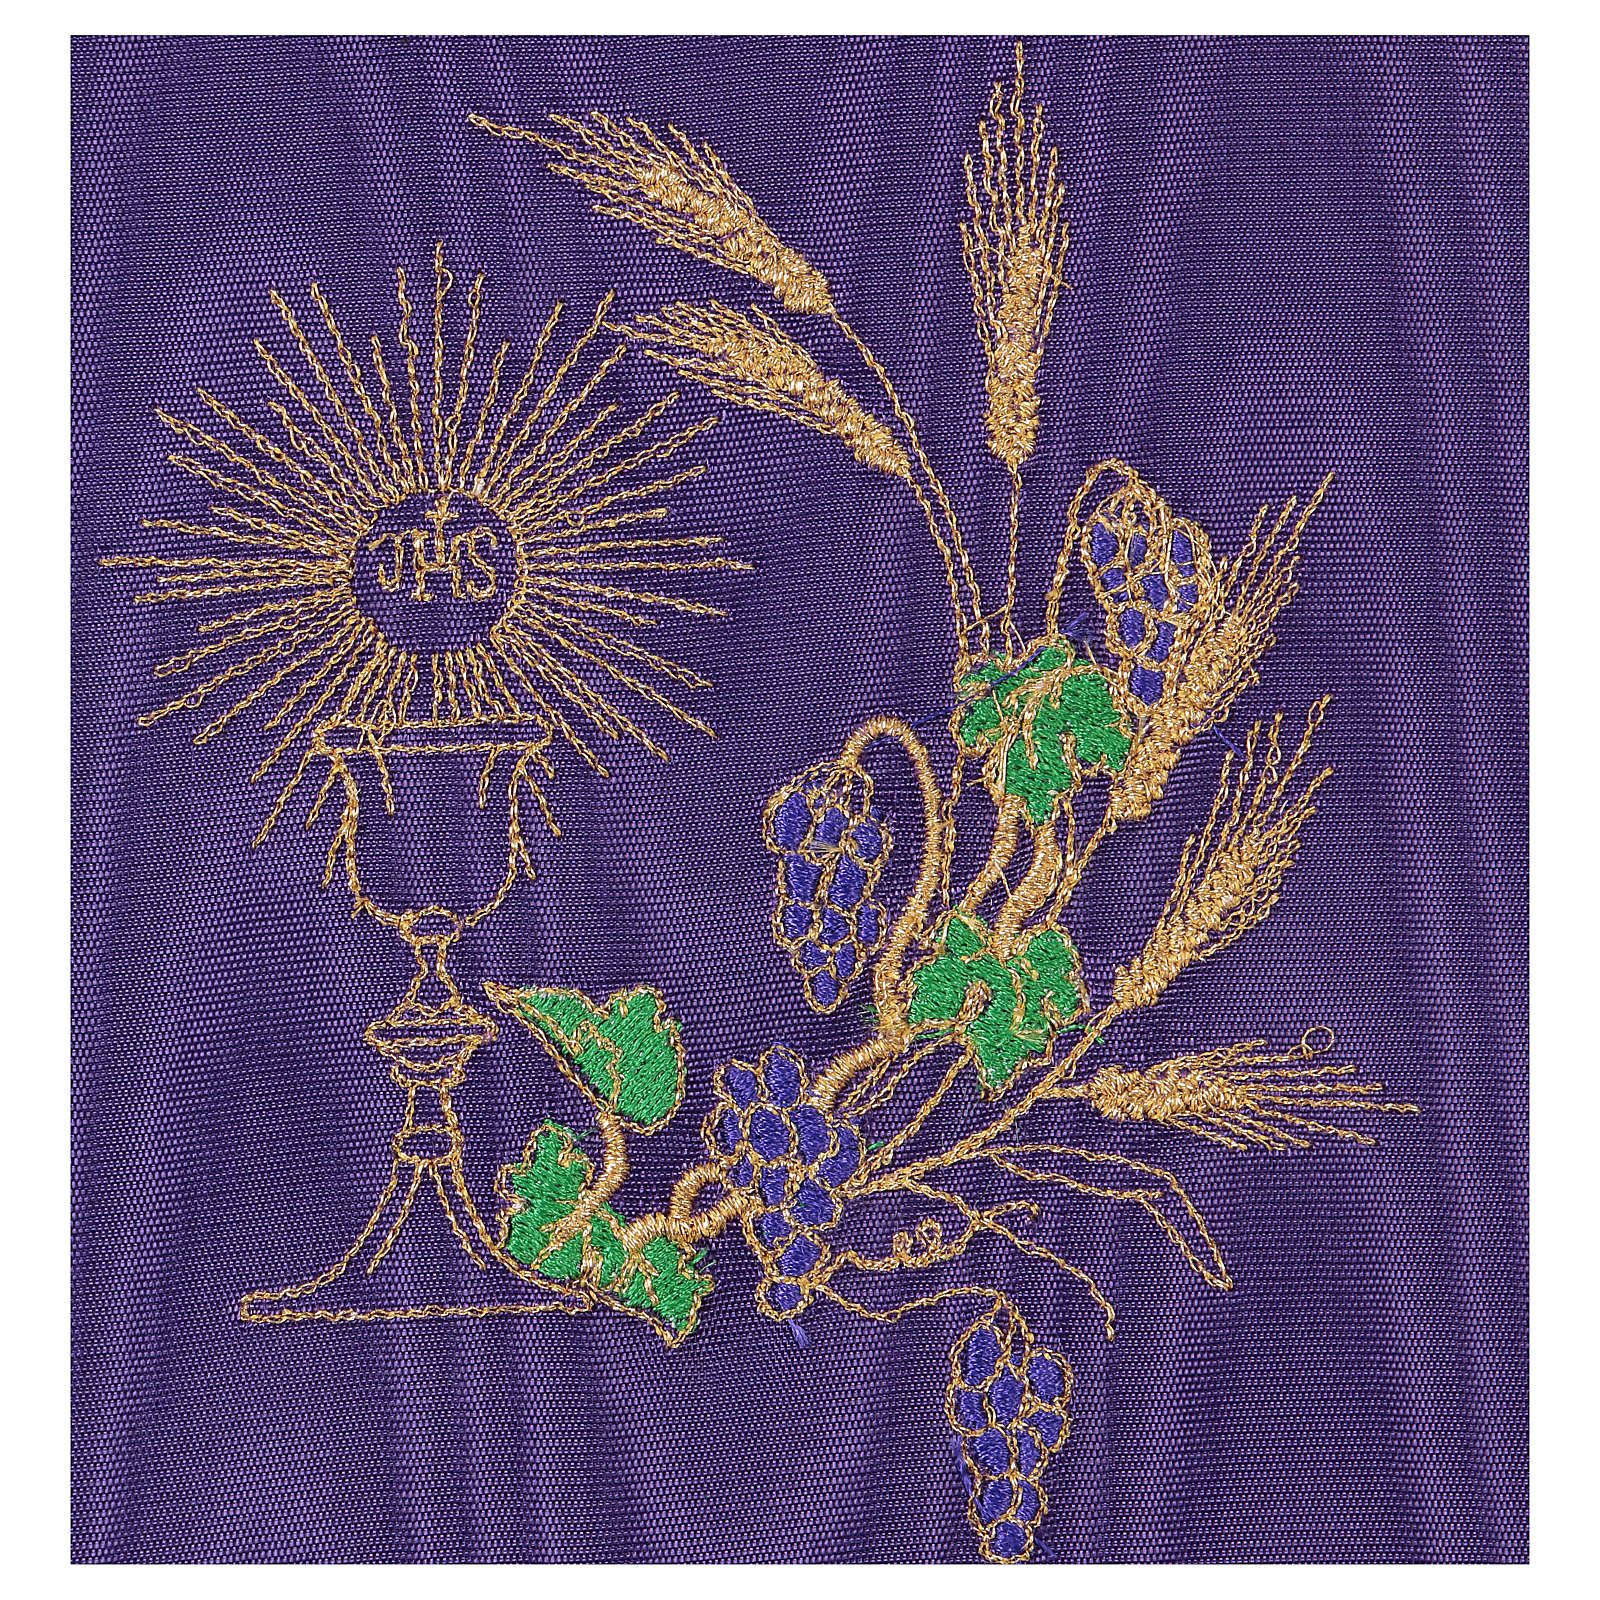 Chalice pall with chalice and grapes embroidery, purple fabric 4